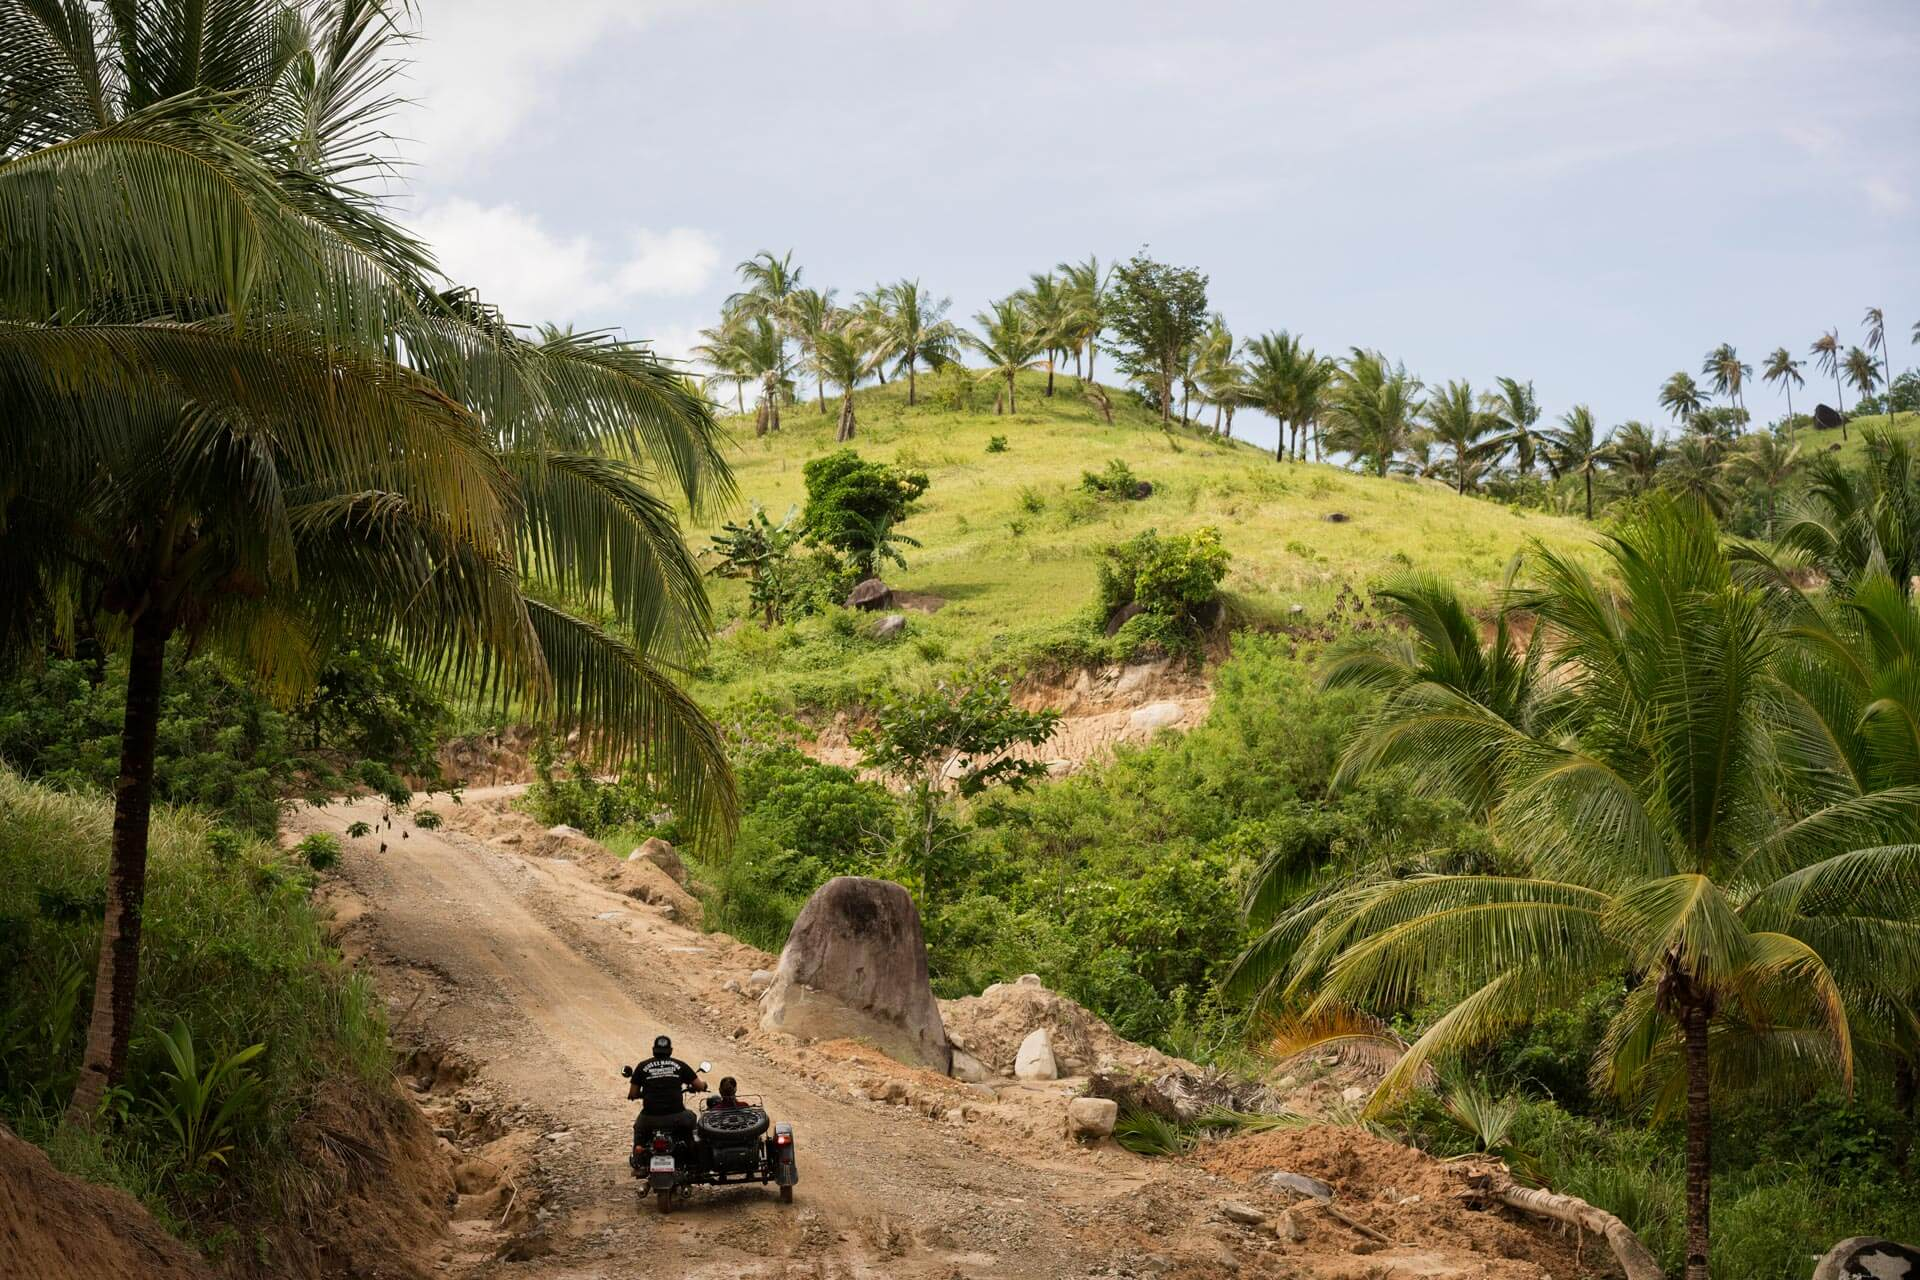 The under-appreciated Ural with its 749 cc engine capacity powers up a rugged hill.